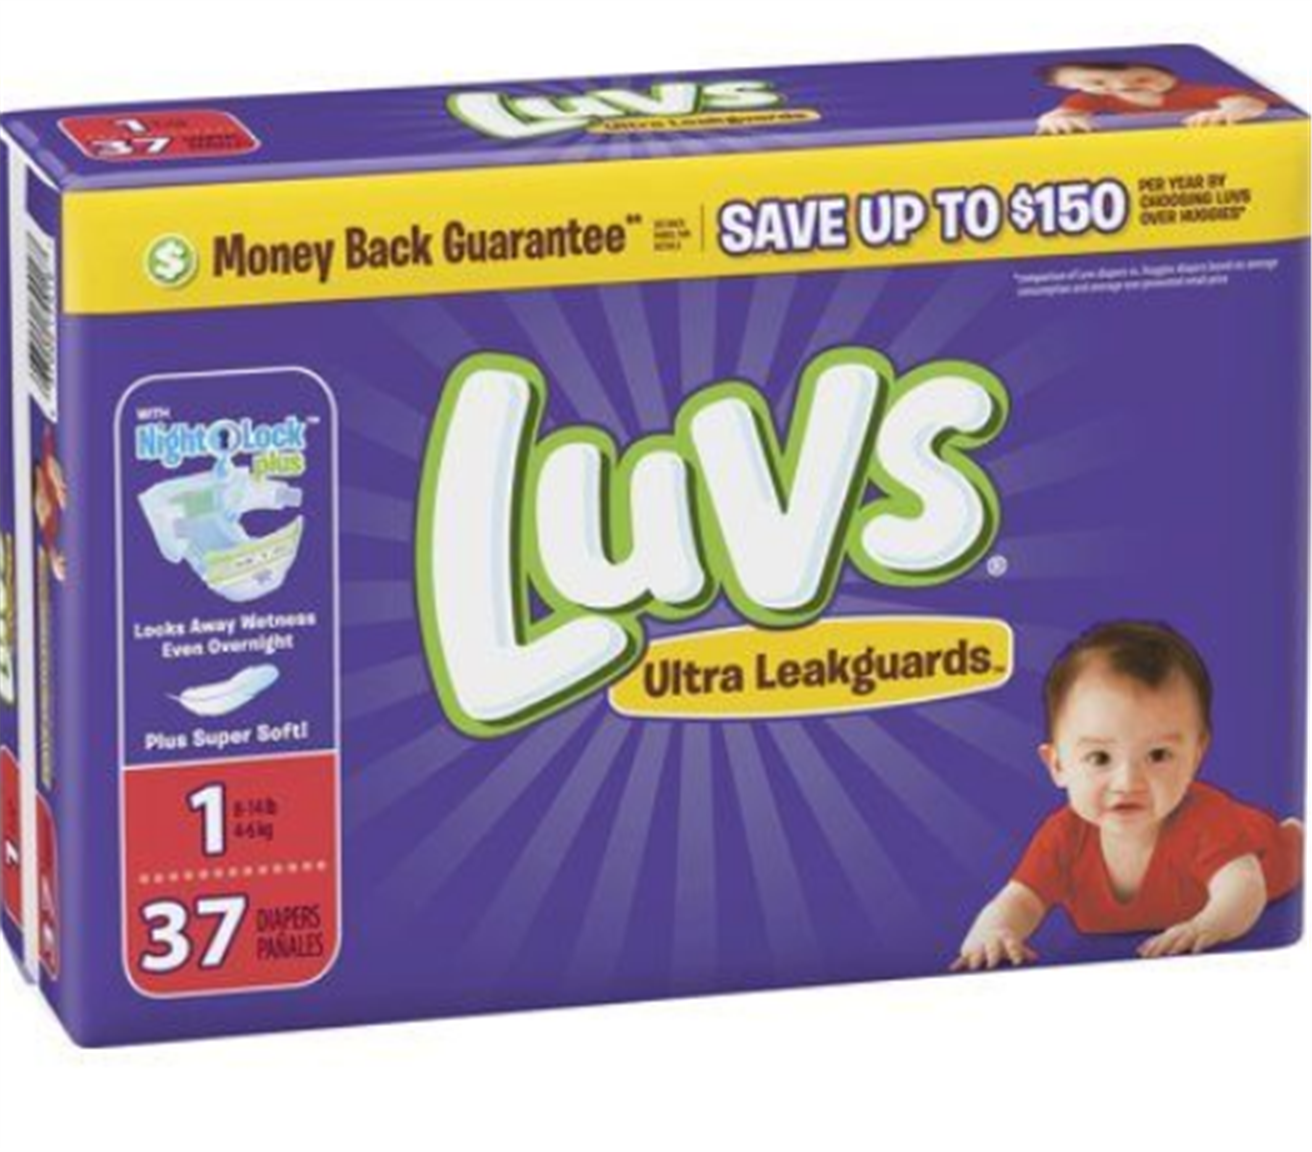 Best Deals On Diapers This week! Pampers Jumbo Packs And Luvs Only $3.36!